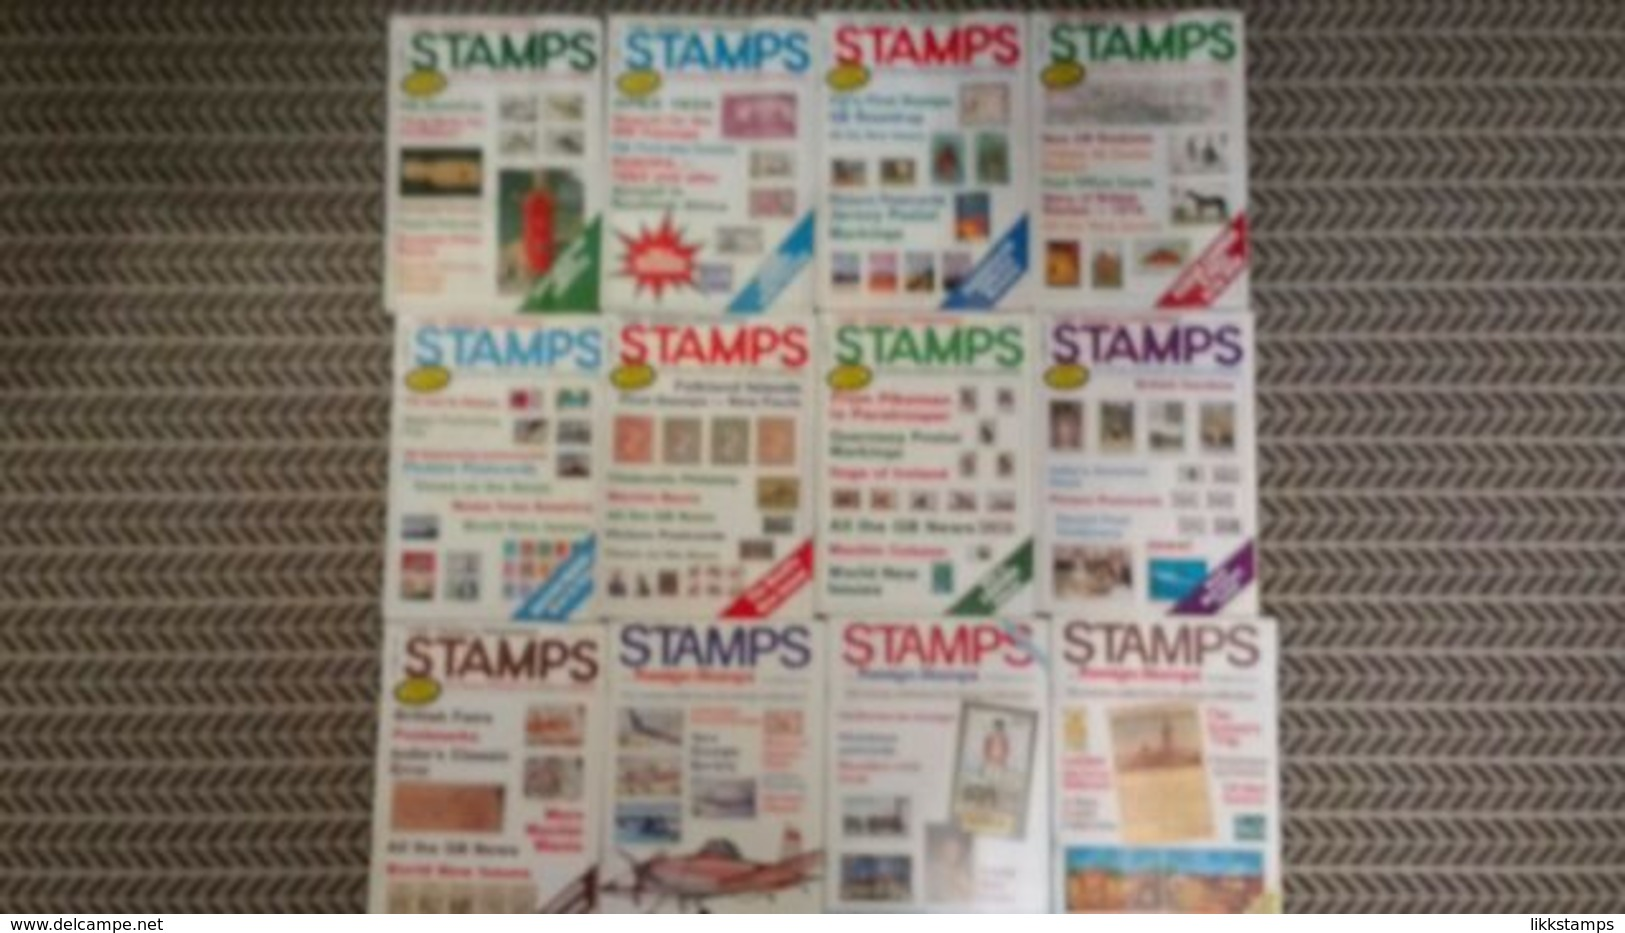 STAMPS / STAMPS AND FOREIGN STAMPS MAGAZINE JANUARY 1983 TO DECEMBER 1983 - Inglesi (dal 1941)